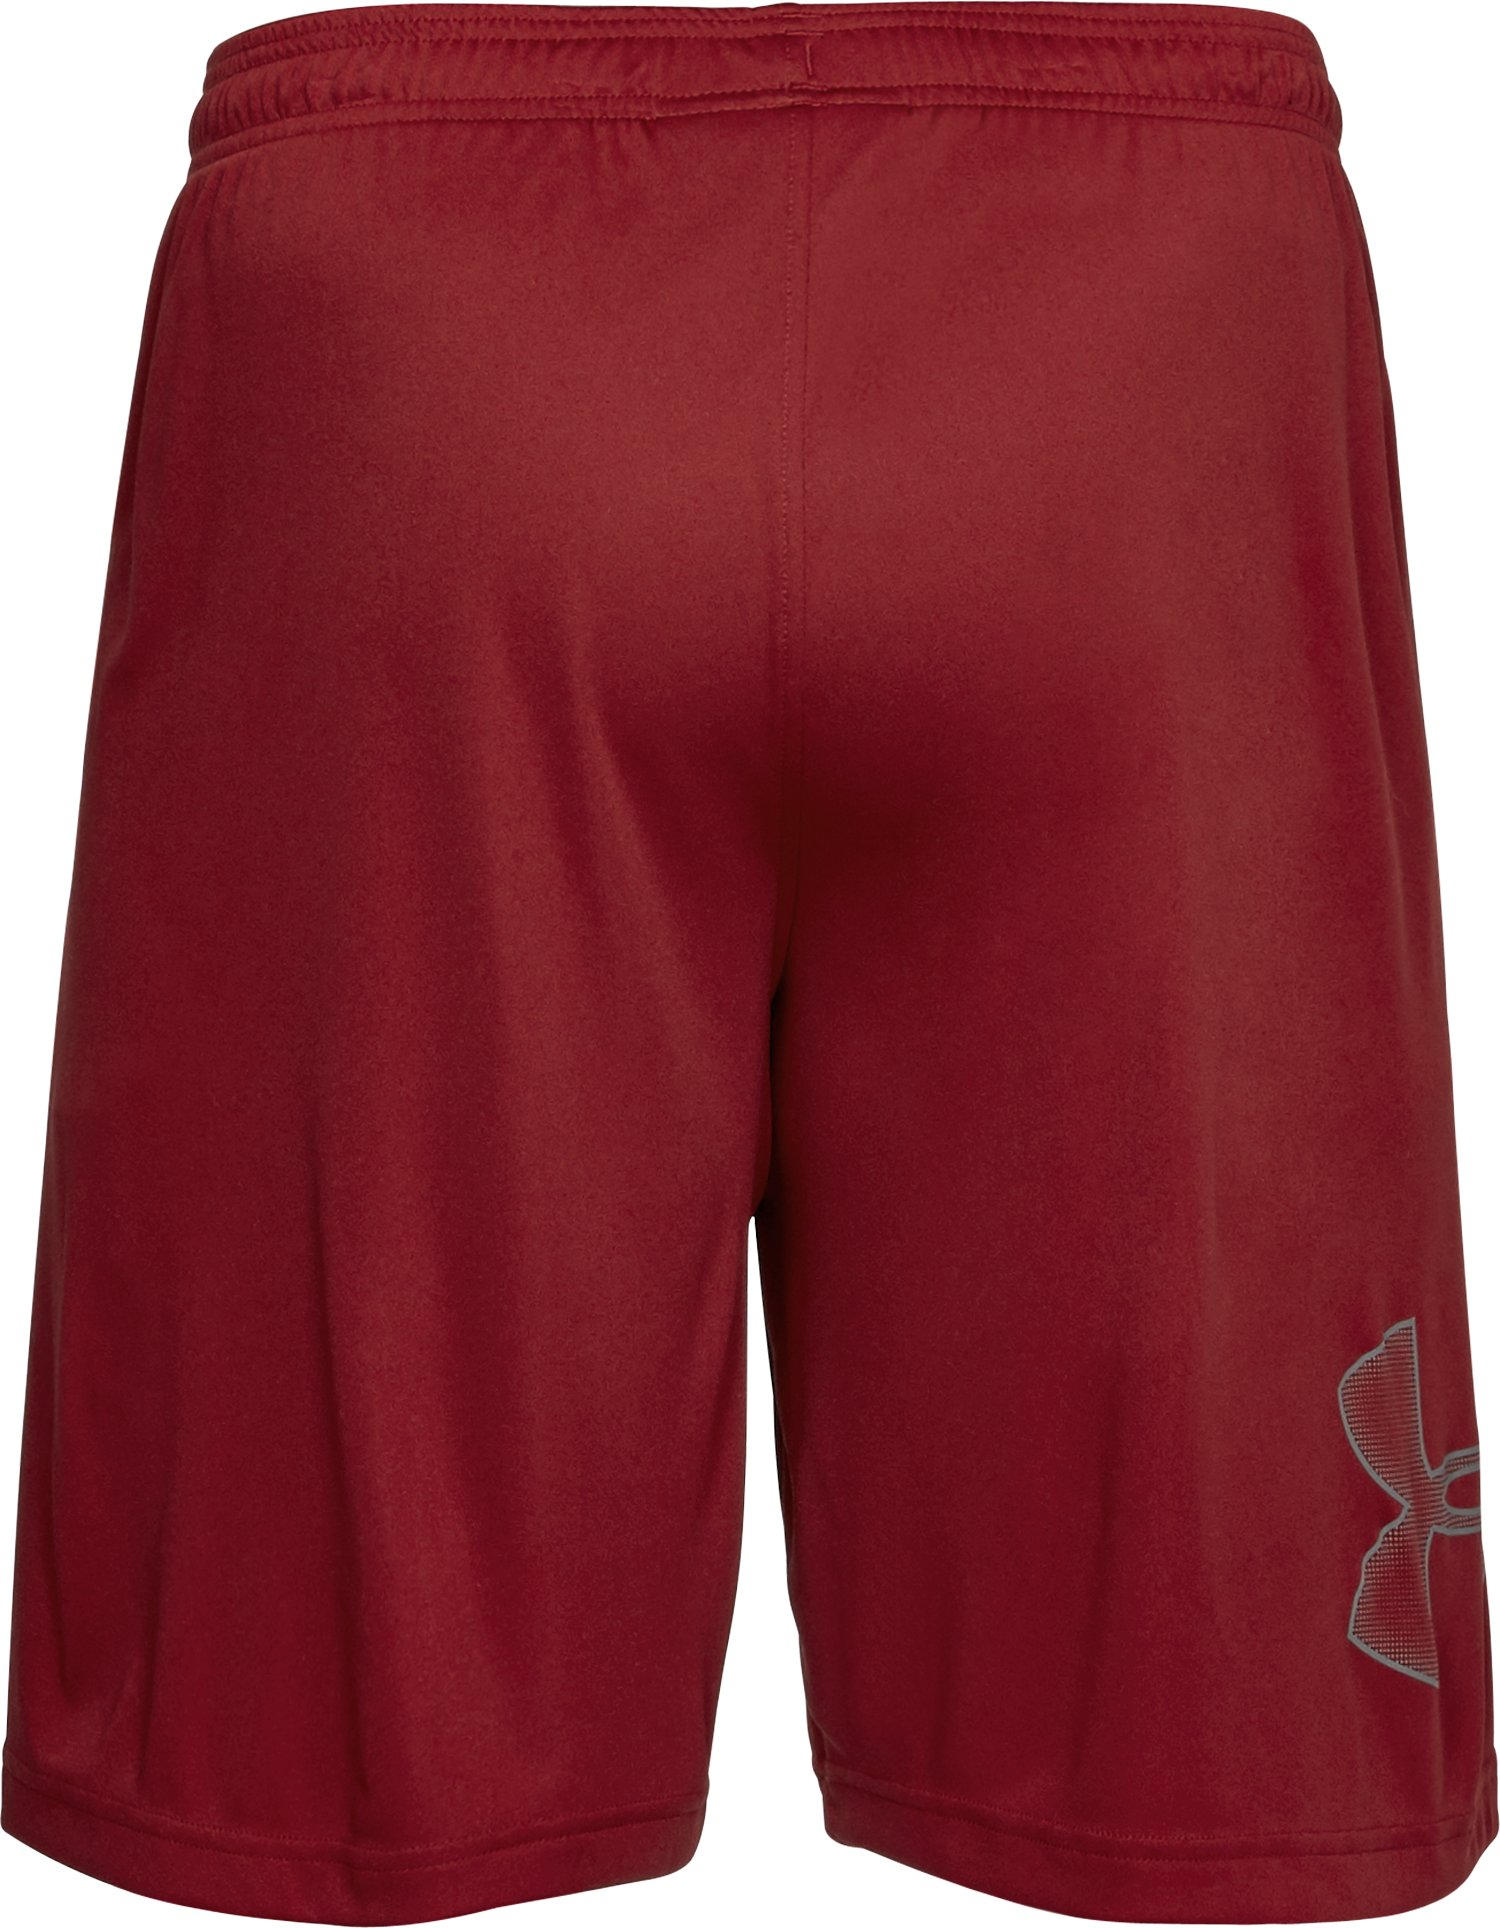 Men's UA Tech™ Graphic Shorts, RAPTURE RED, undefined